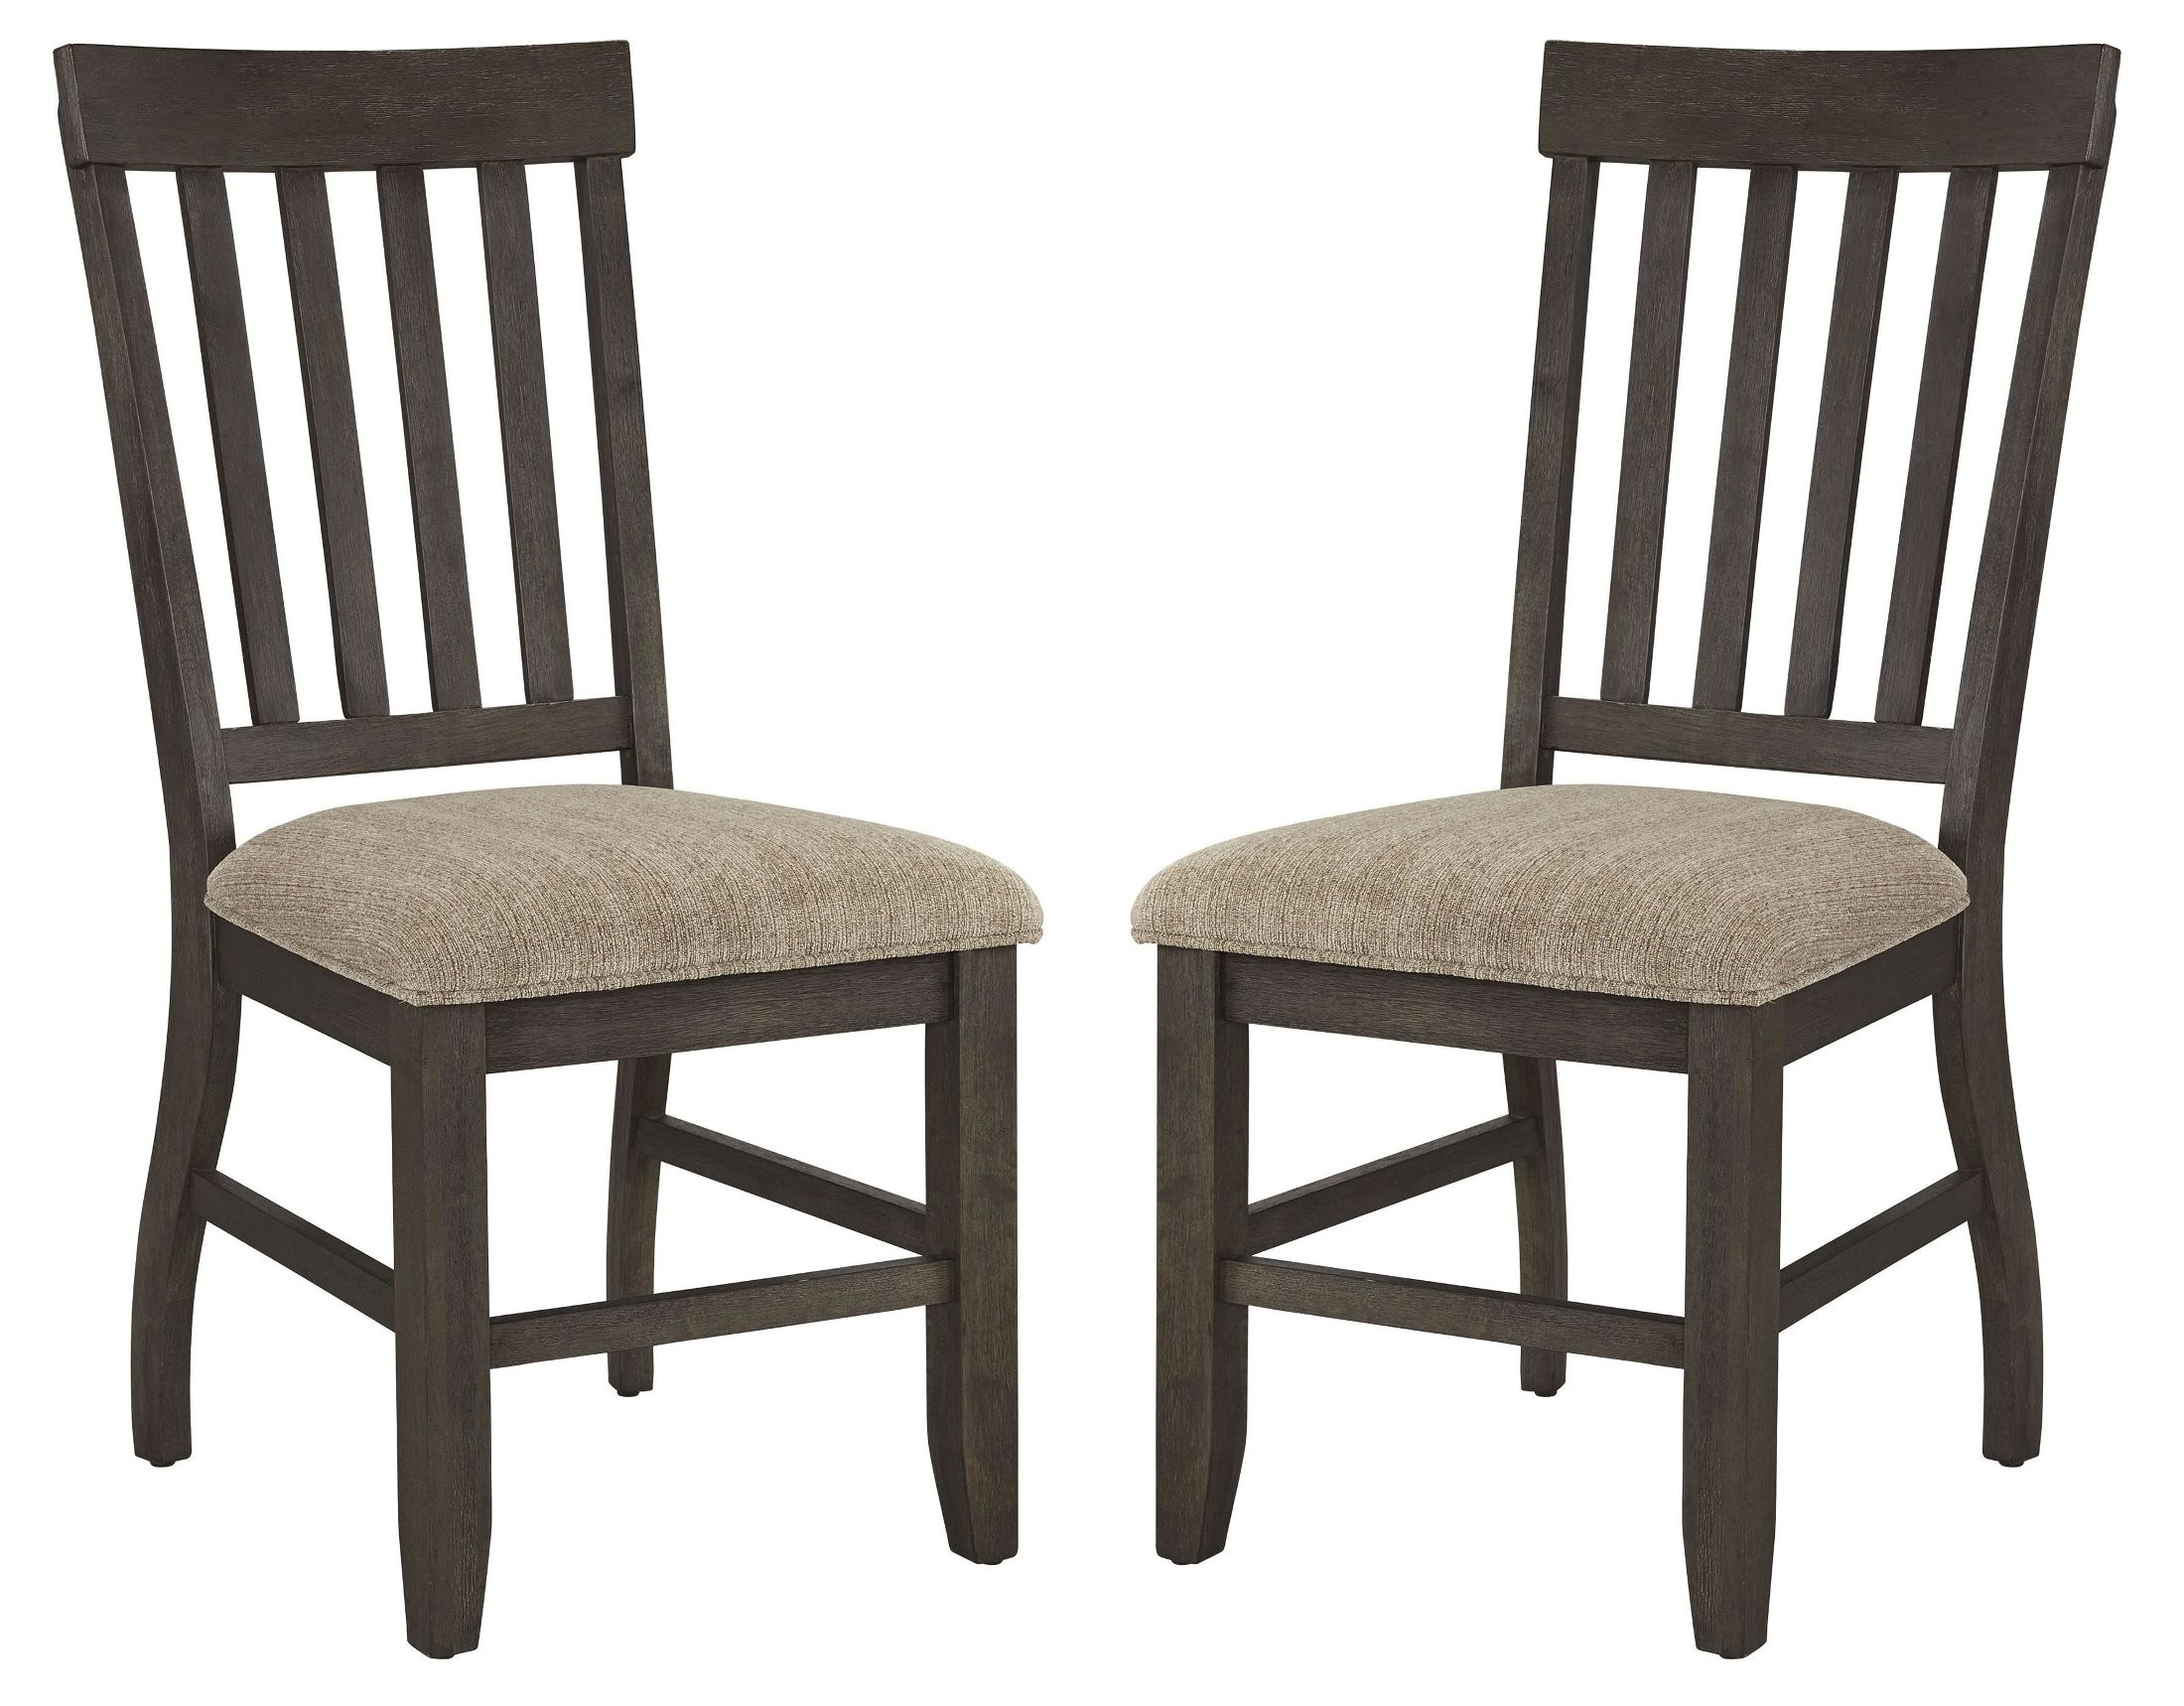 Cream Chairs Dresbar Cream Dining Upholstered Side Chair Set Of 2 From